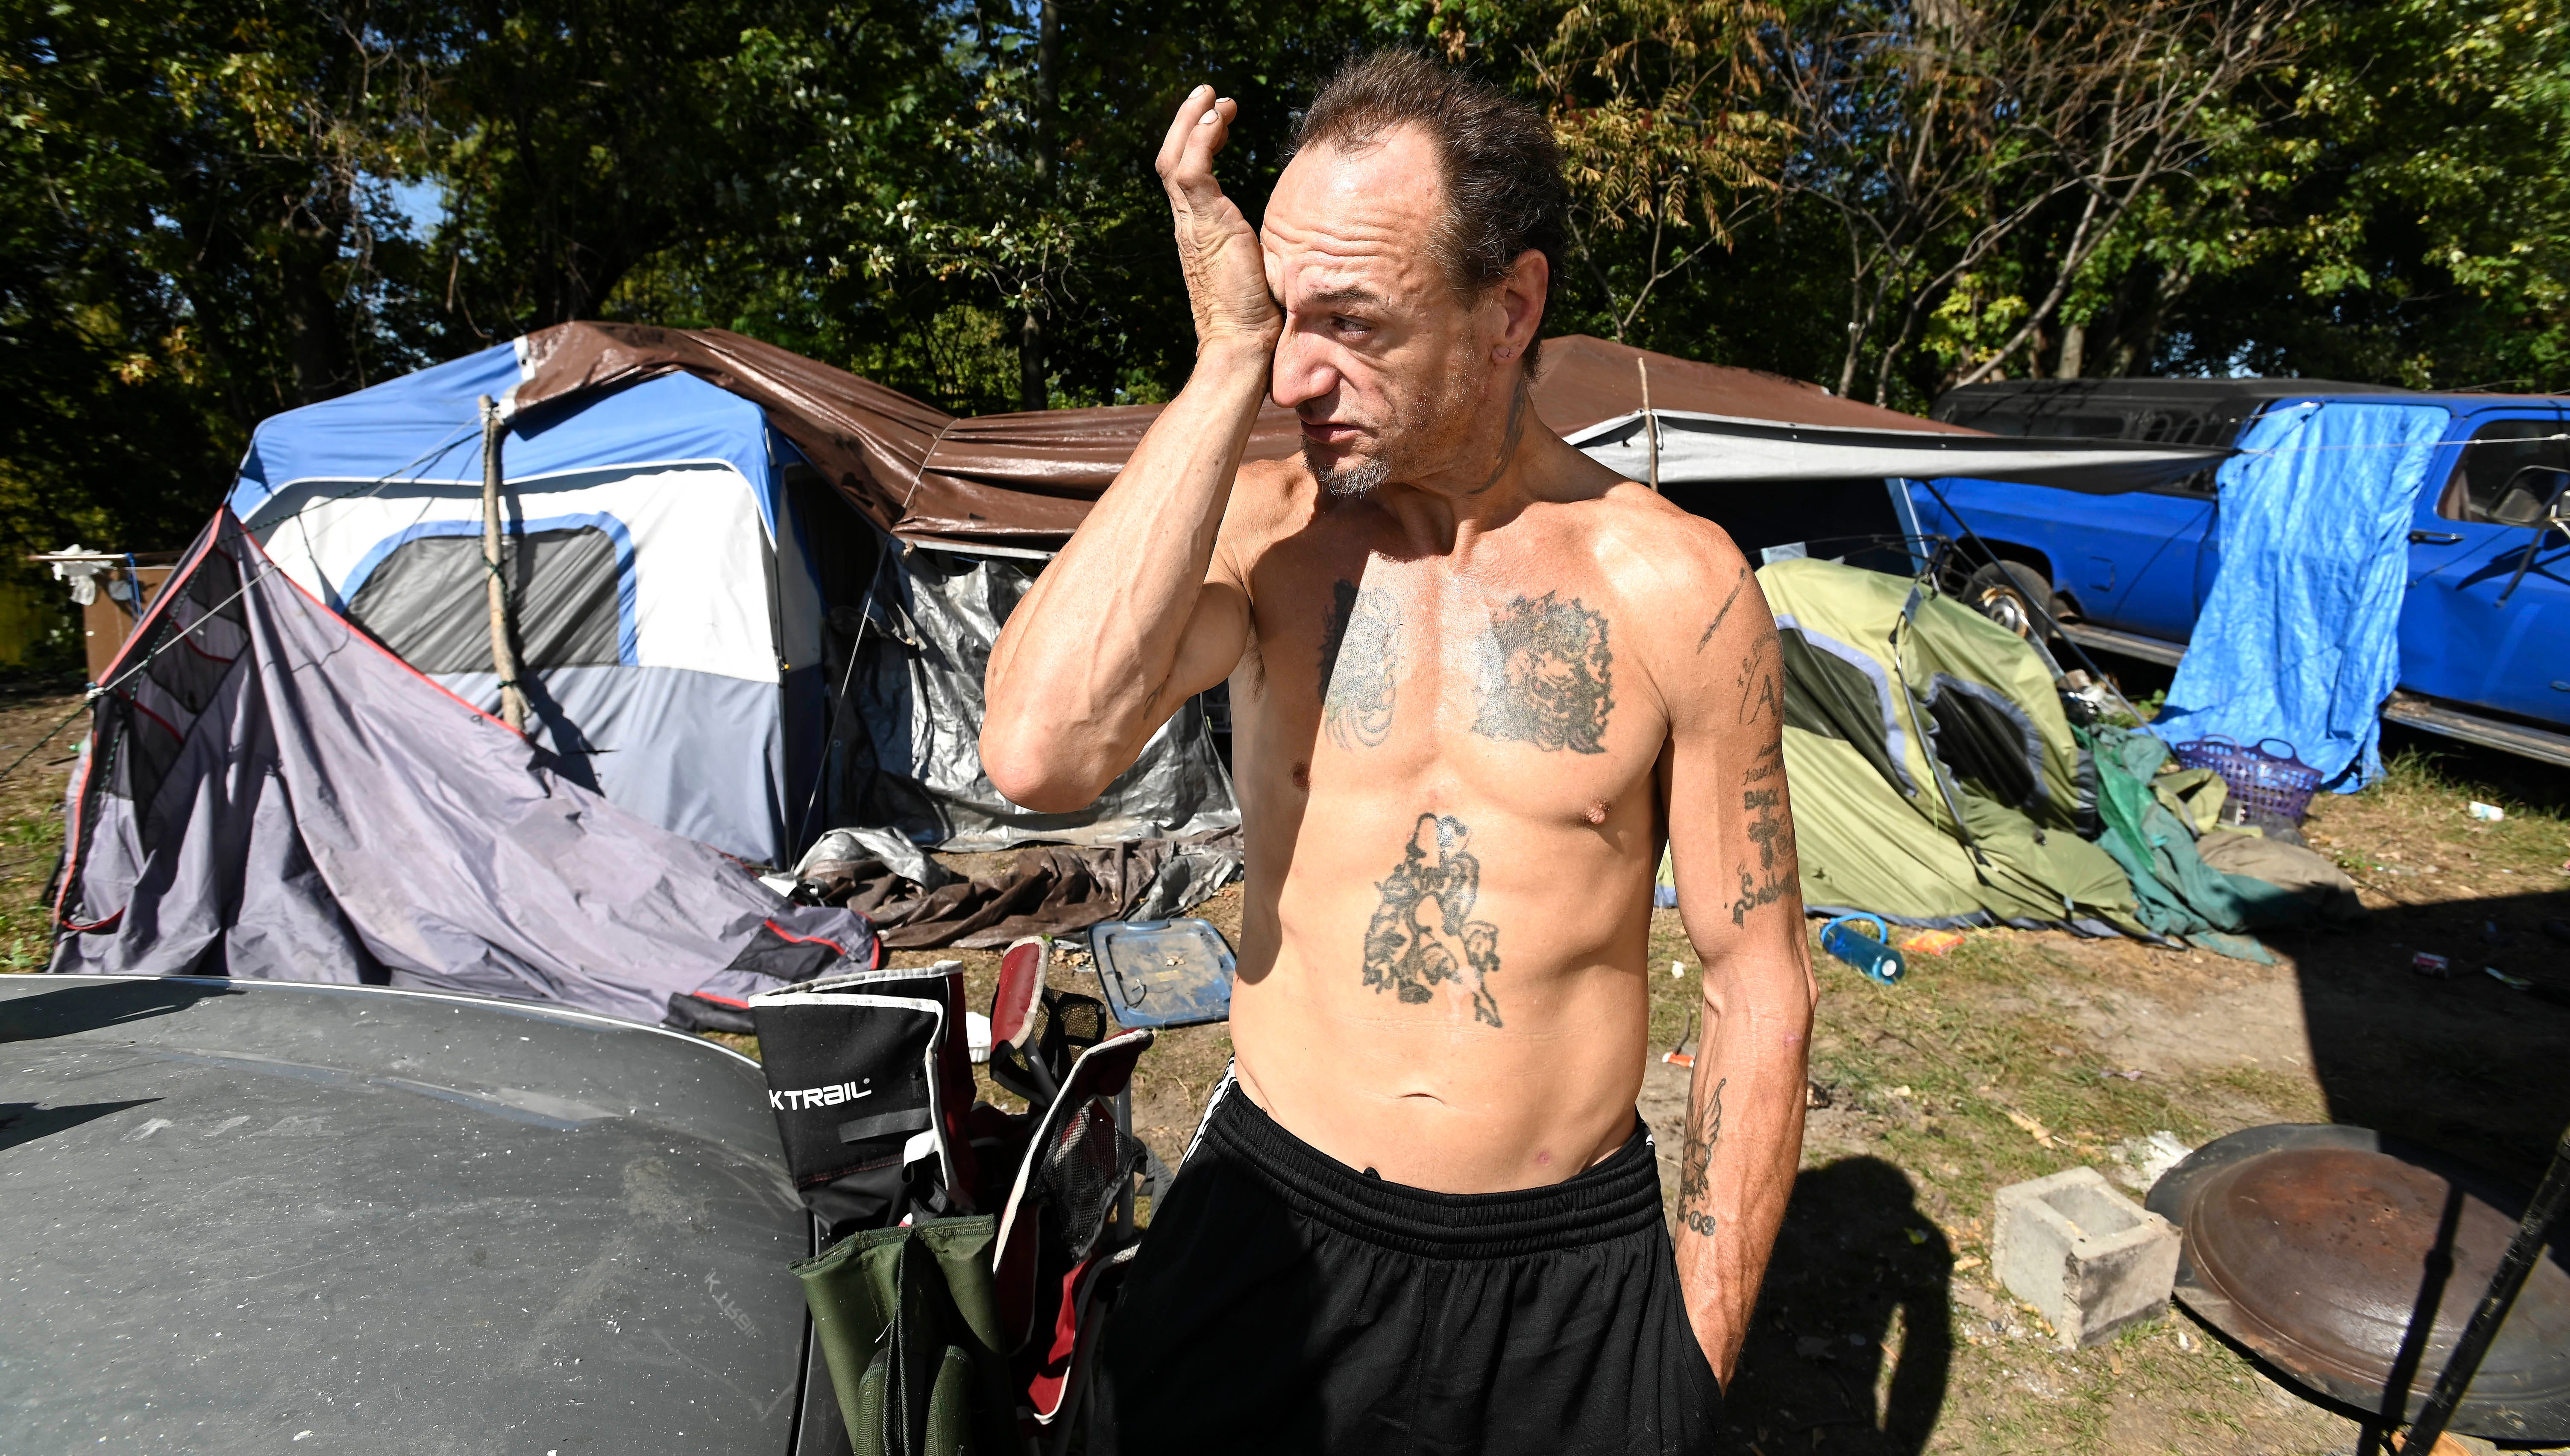 Inside the last days of the Tent City homeless camp in Michigan